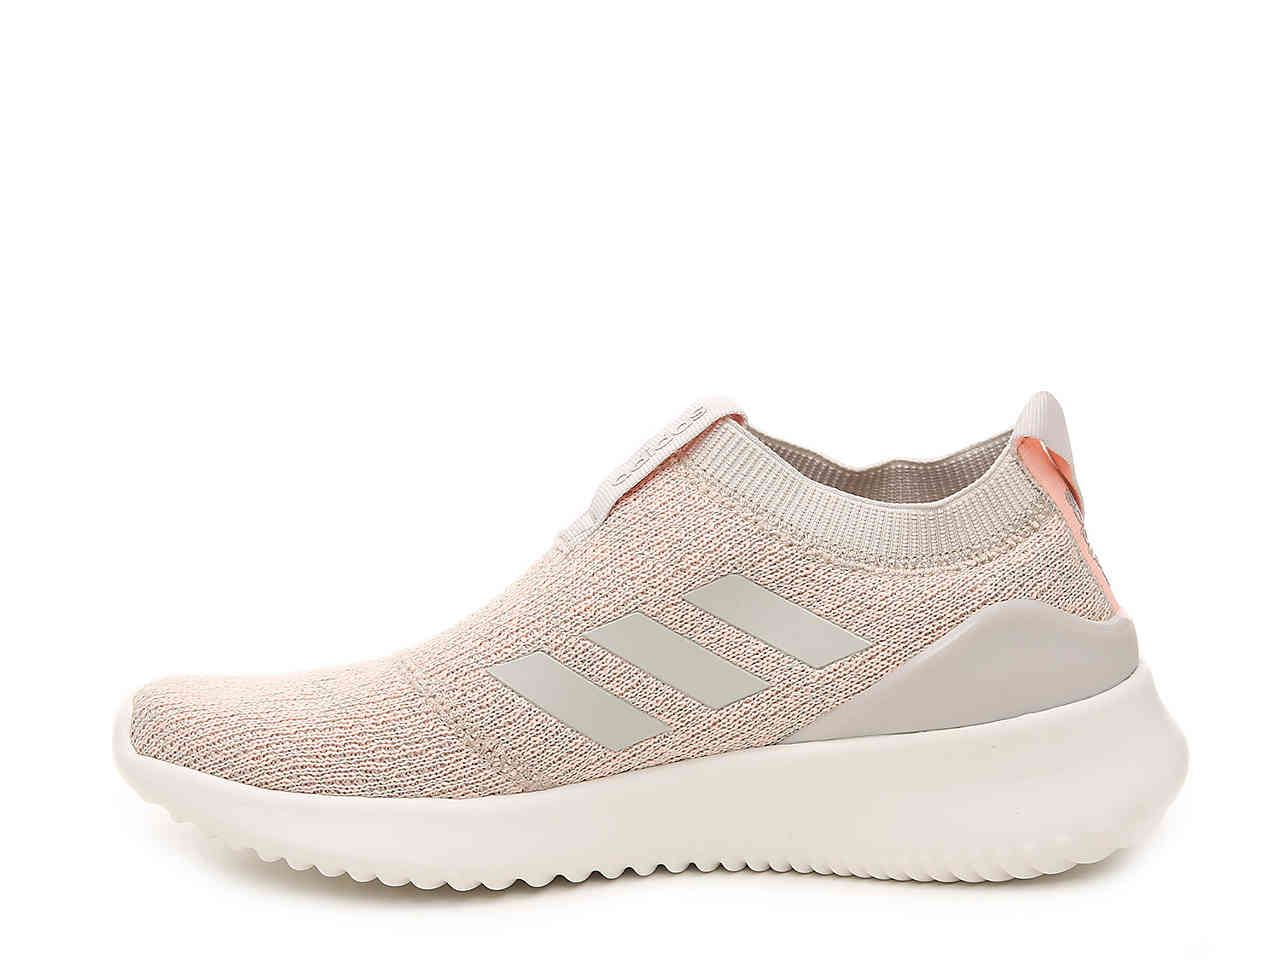 premium selection 0186e e1904 adidas Ultimafusion Slip-On Sneaker - Womens Womens Shoes  DSW